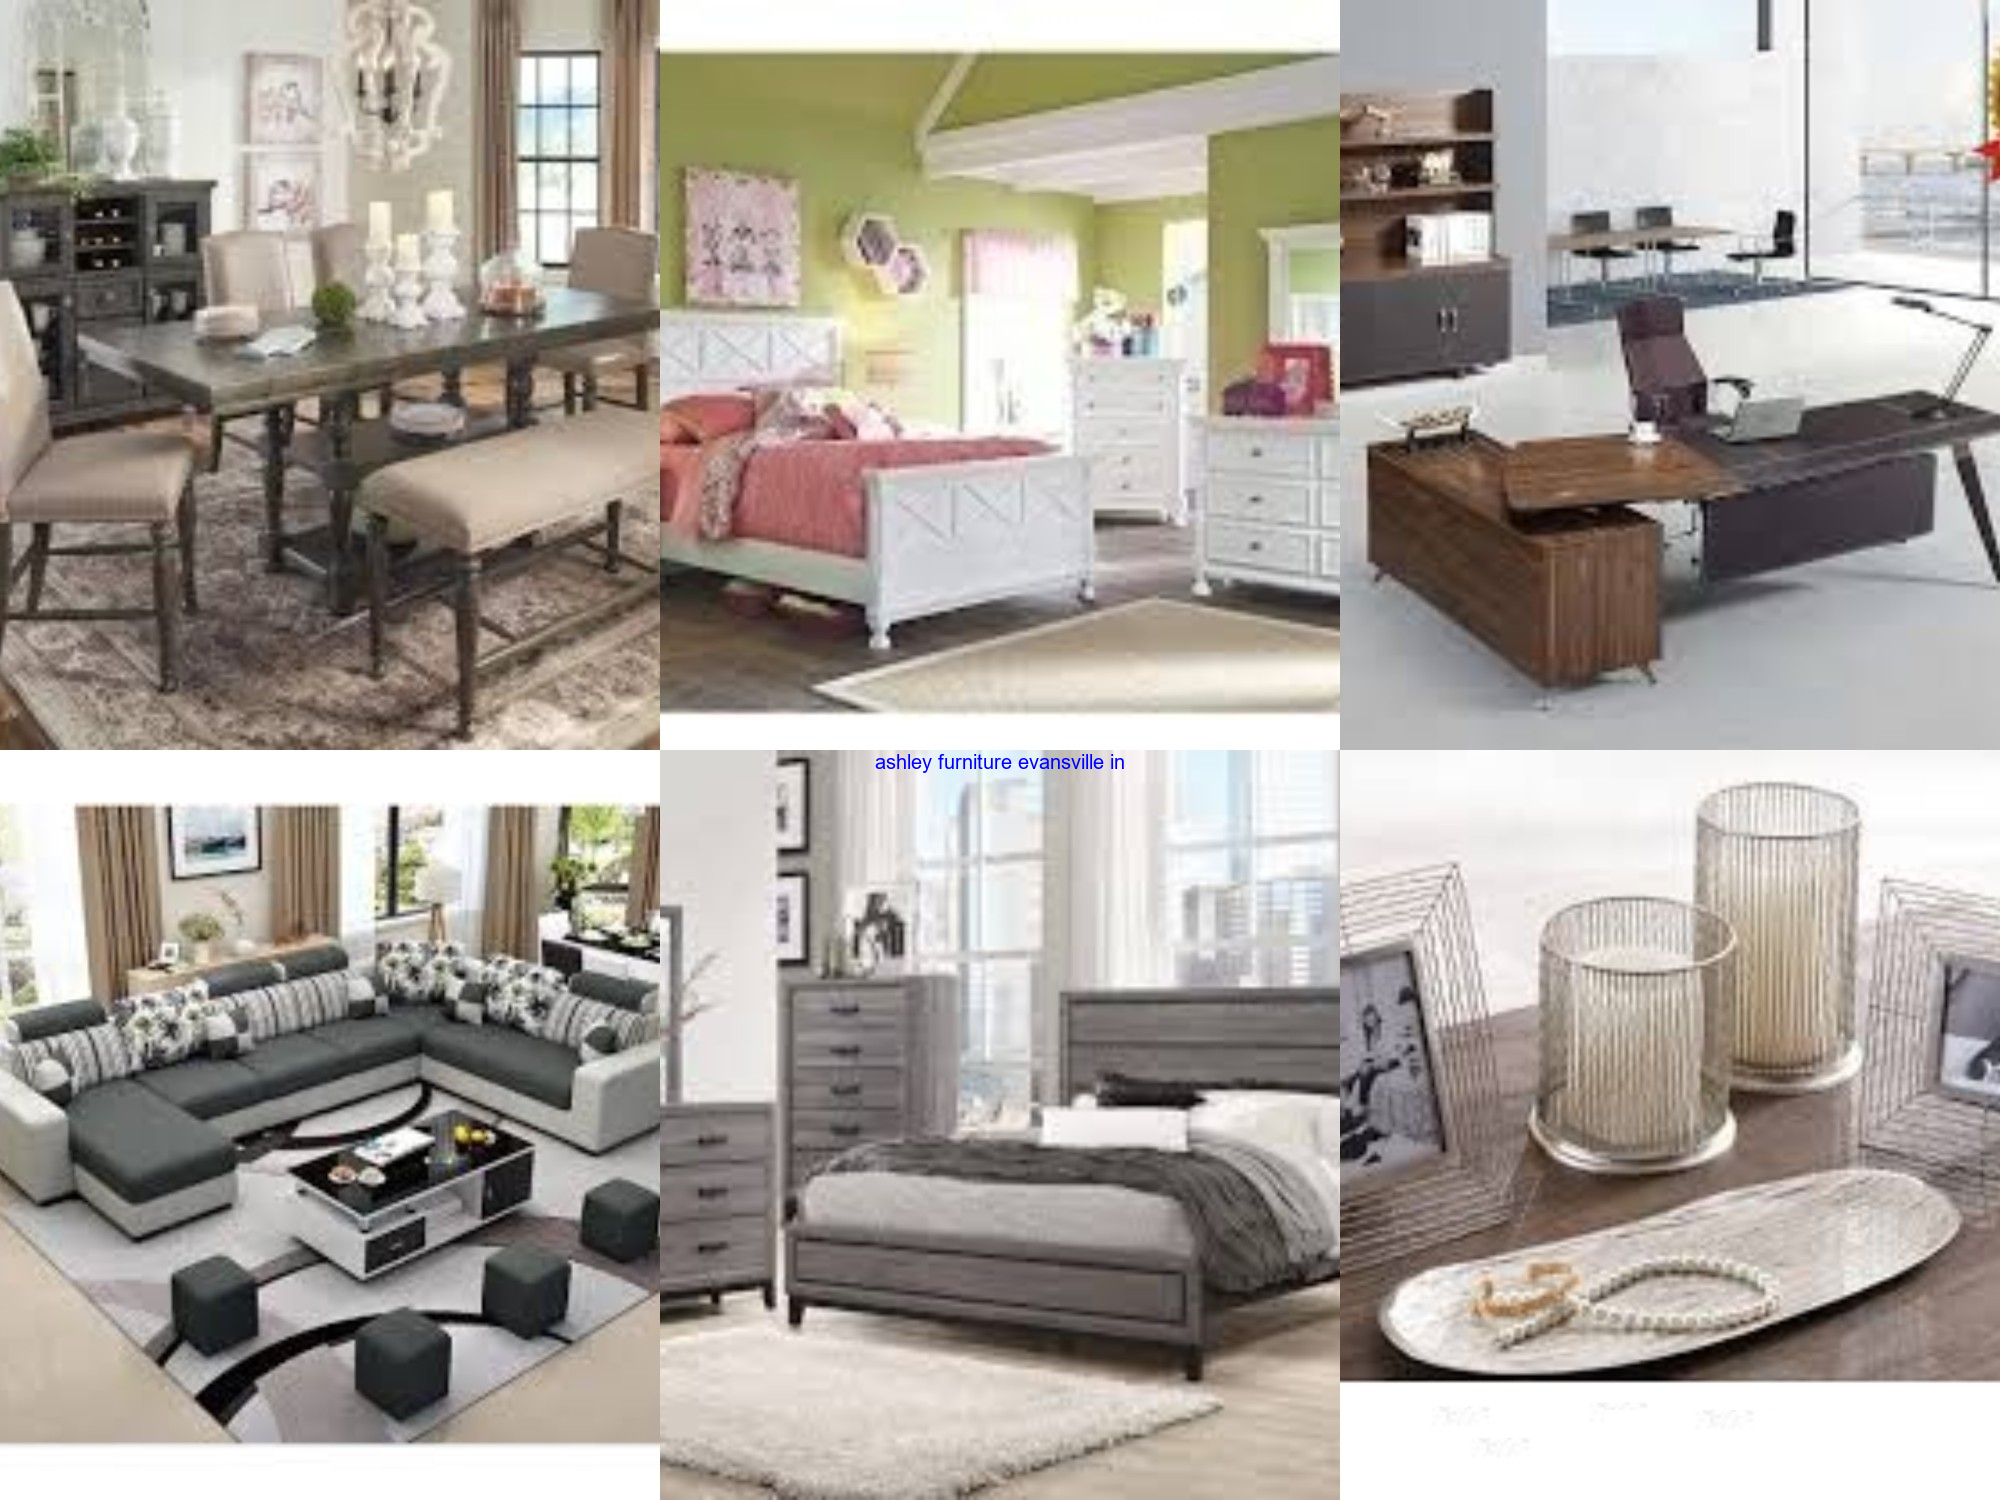 Ashley Furniture Evansville In I Might Suggest You To Visit This